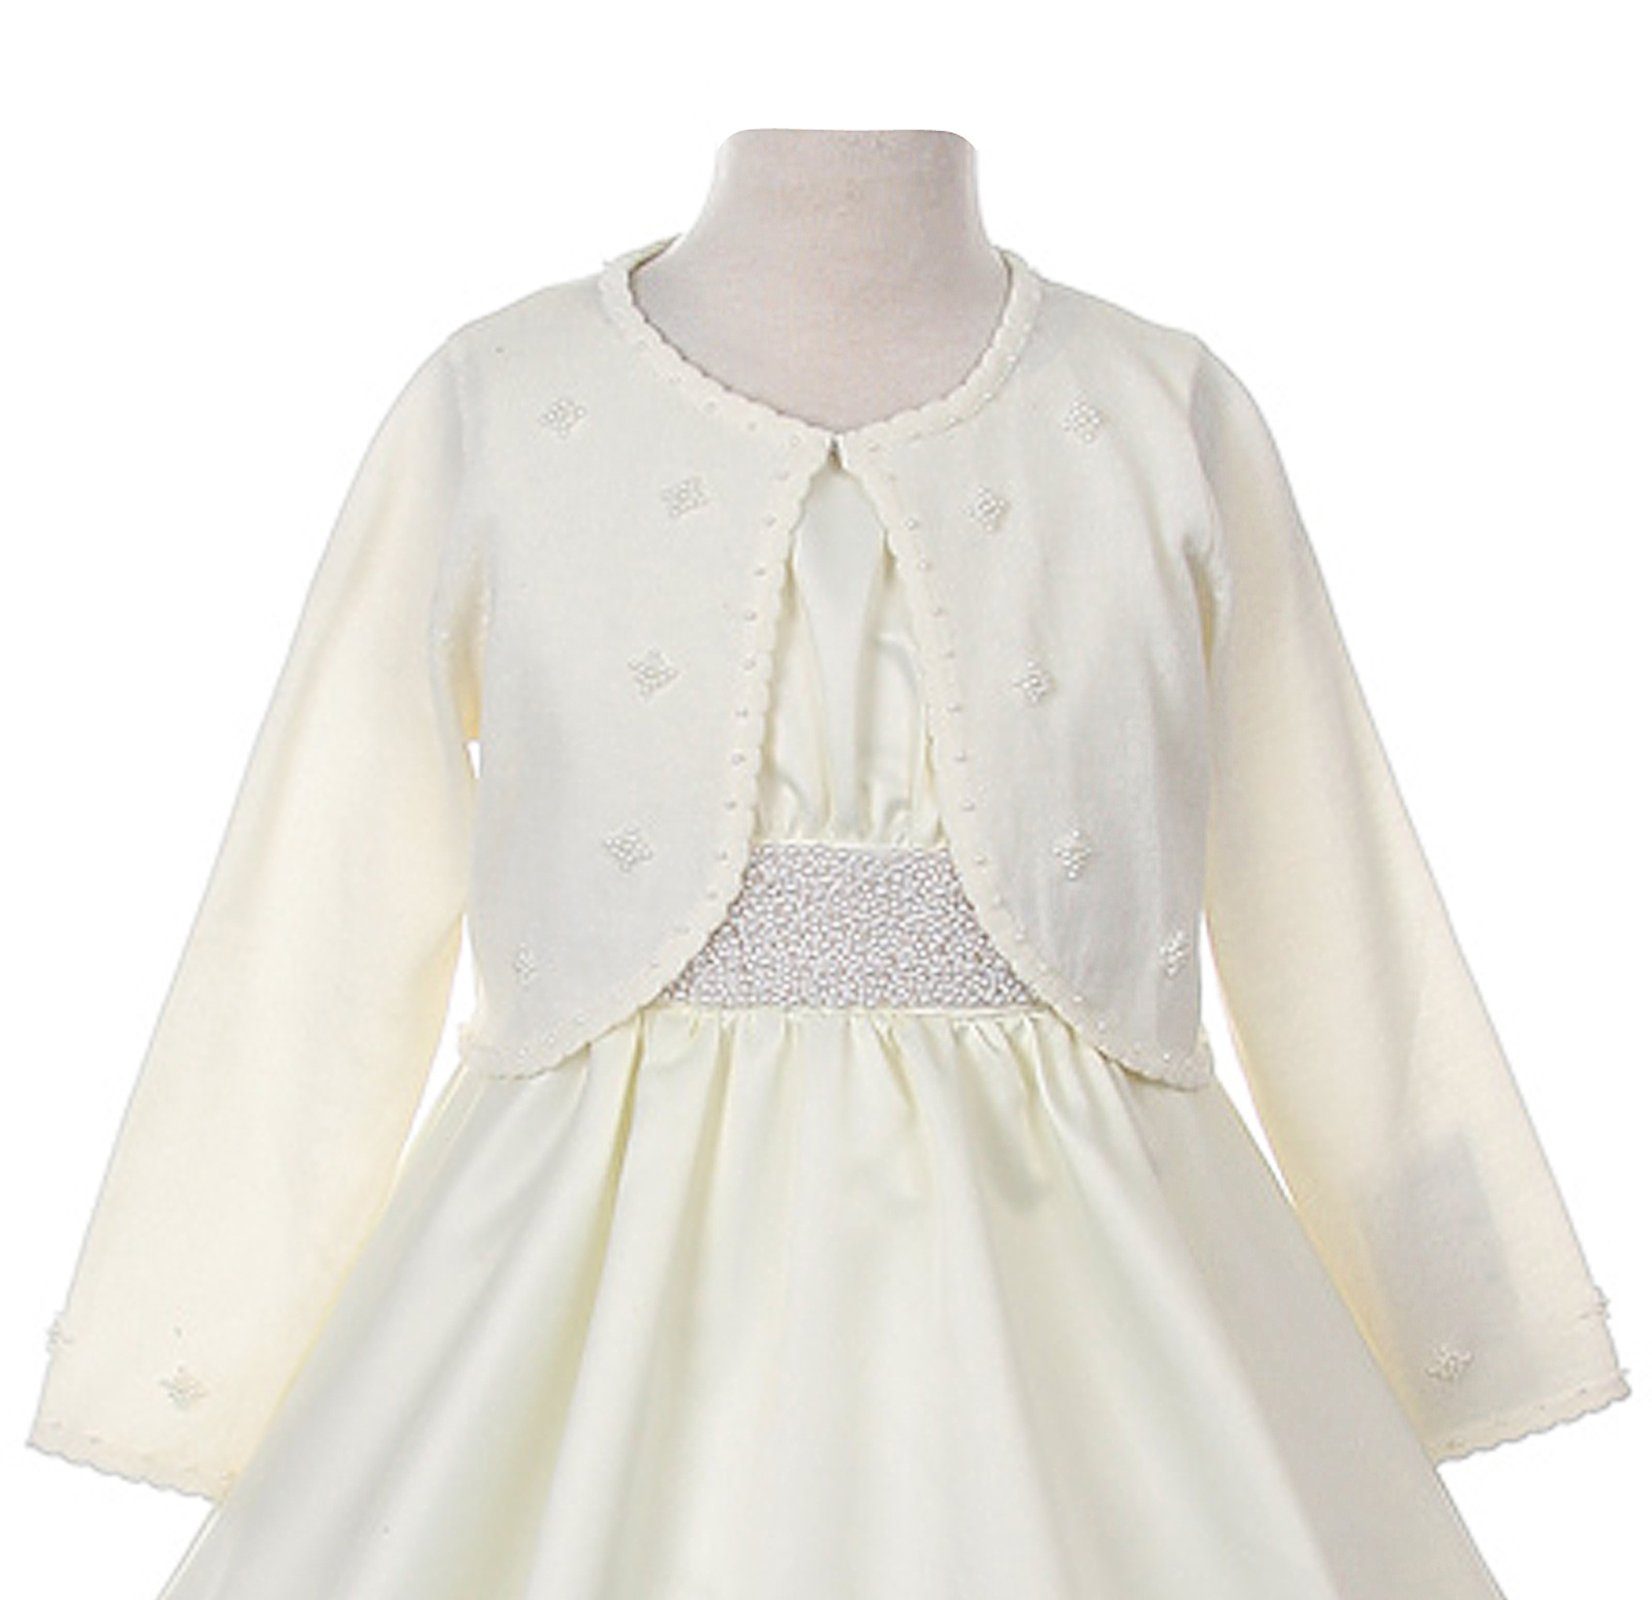 Classy 3010 Ivory Pearl Beaded Sweater for Girl - Size M (4-6)